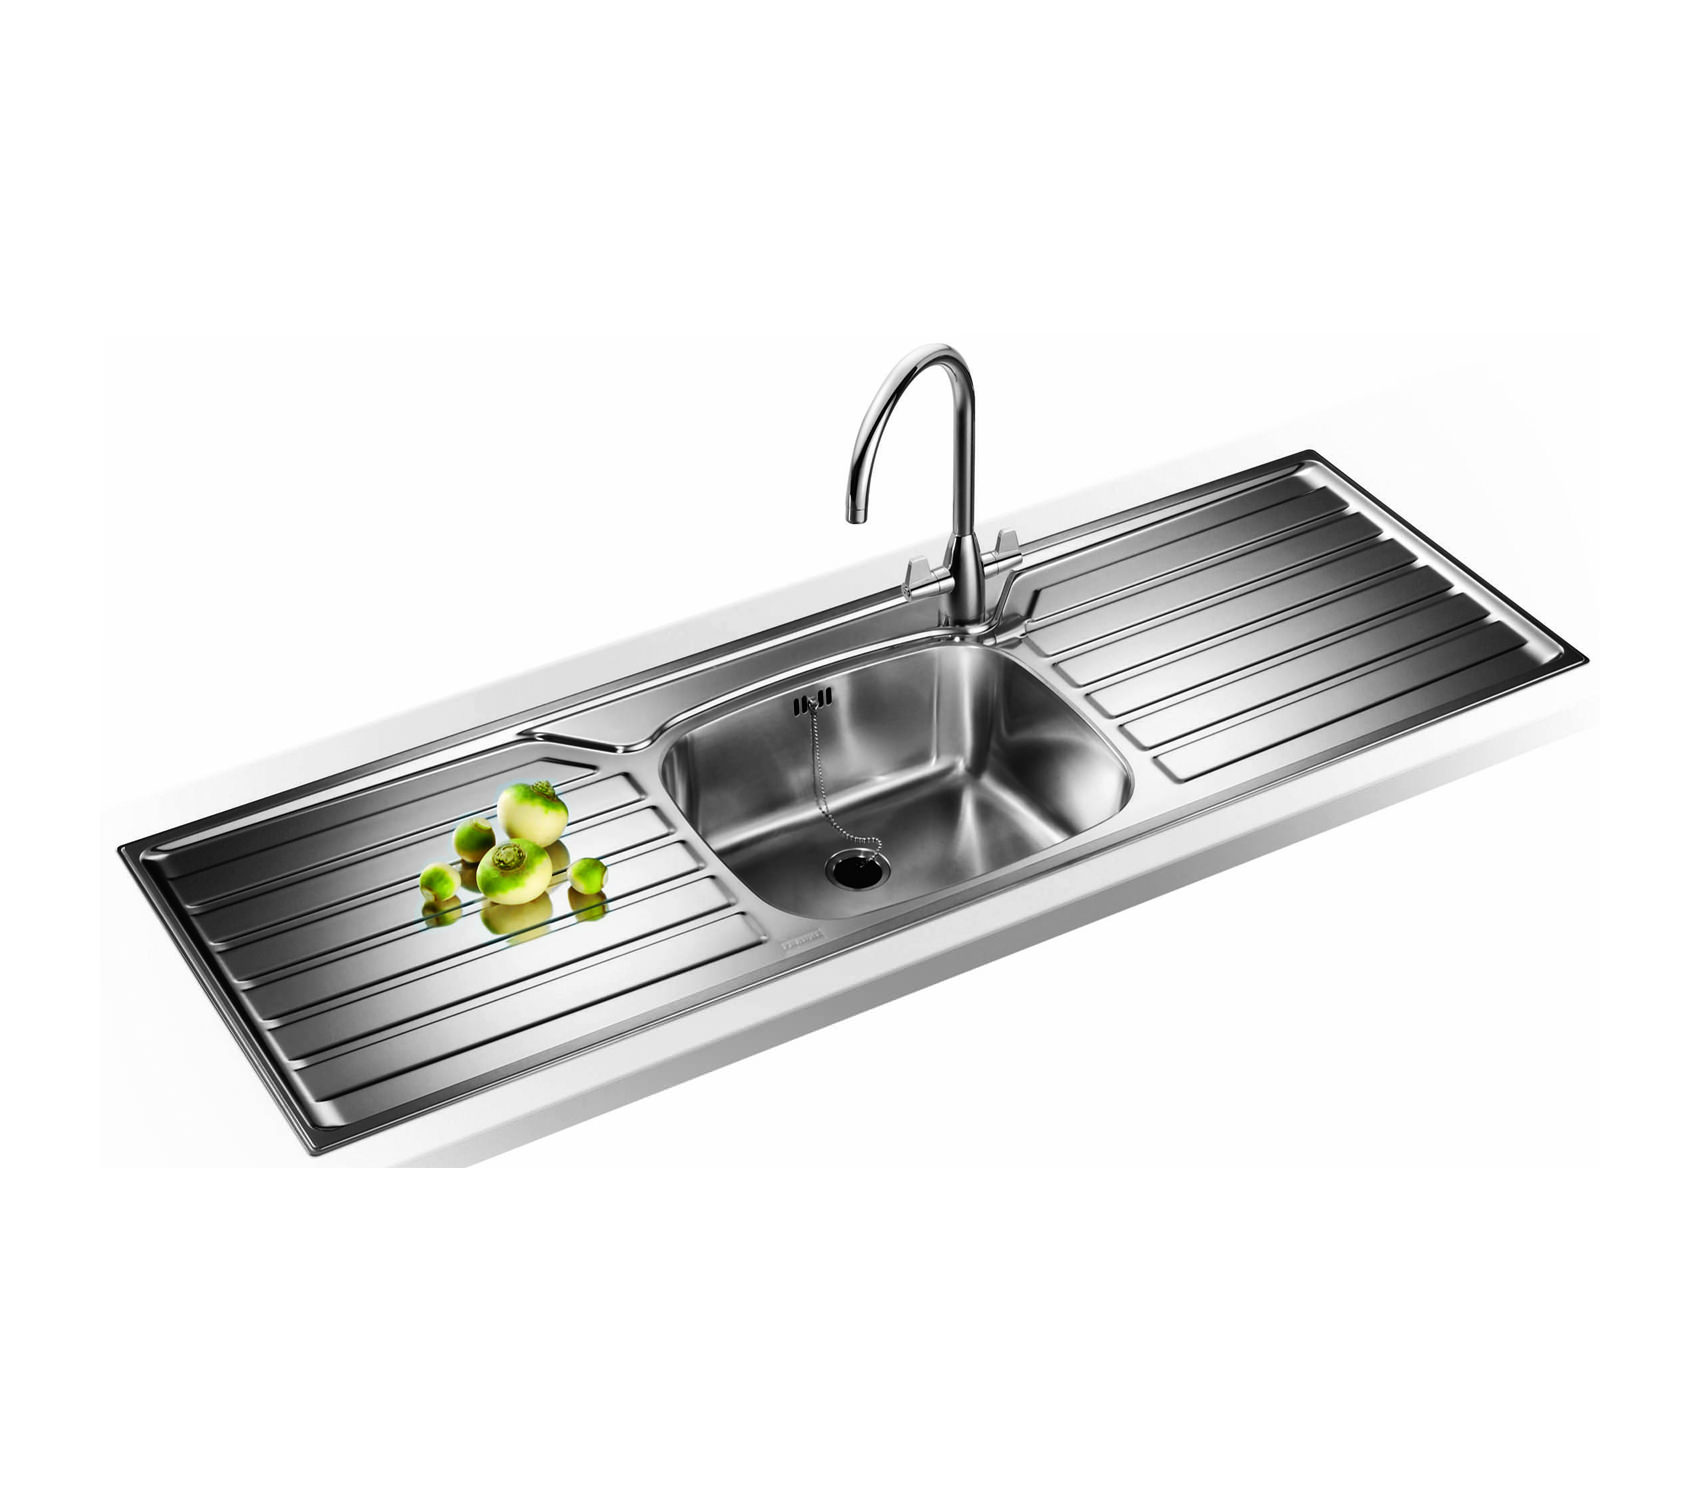 designer kitchen sinks uk franke uk designer pack ukx 612 stainless steel sink and tap 170